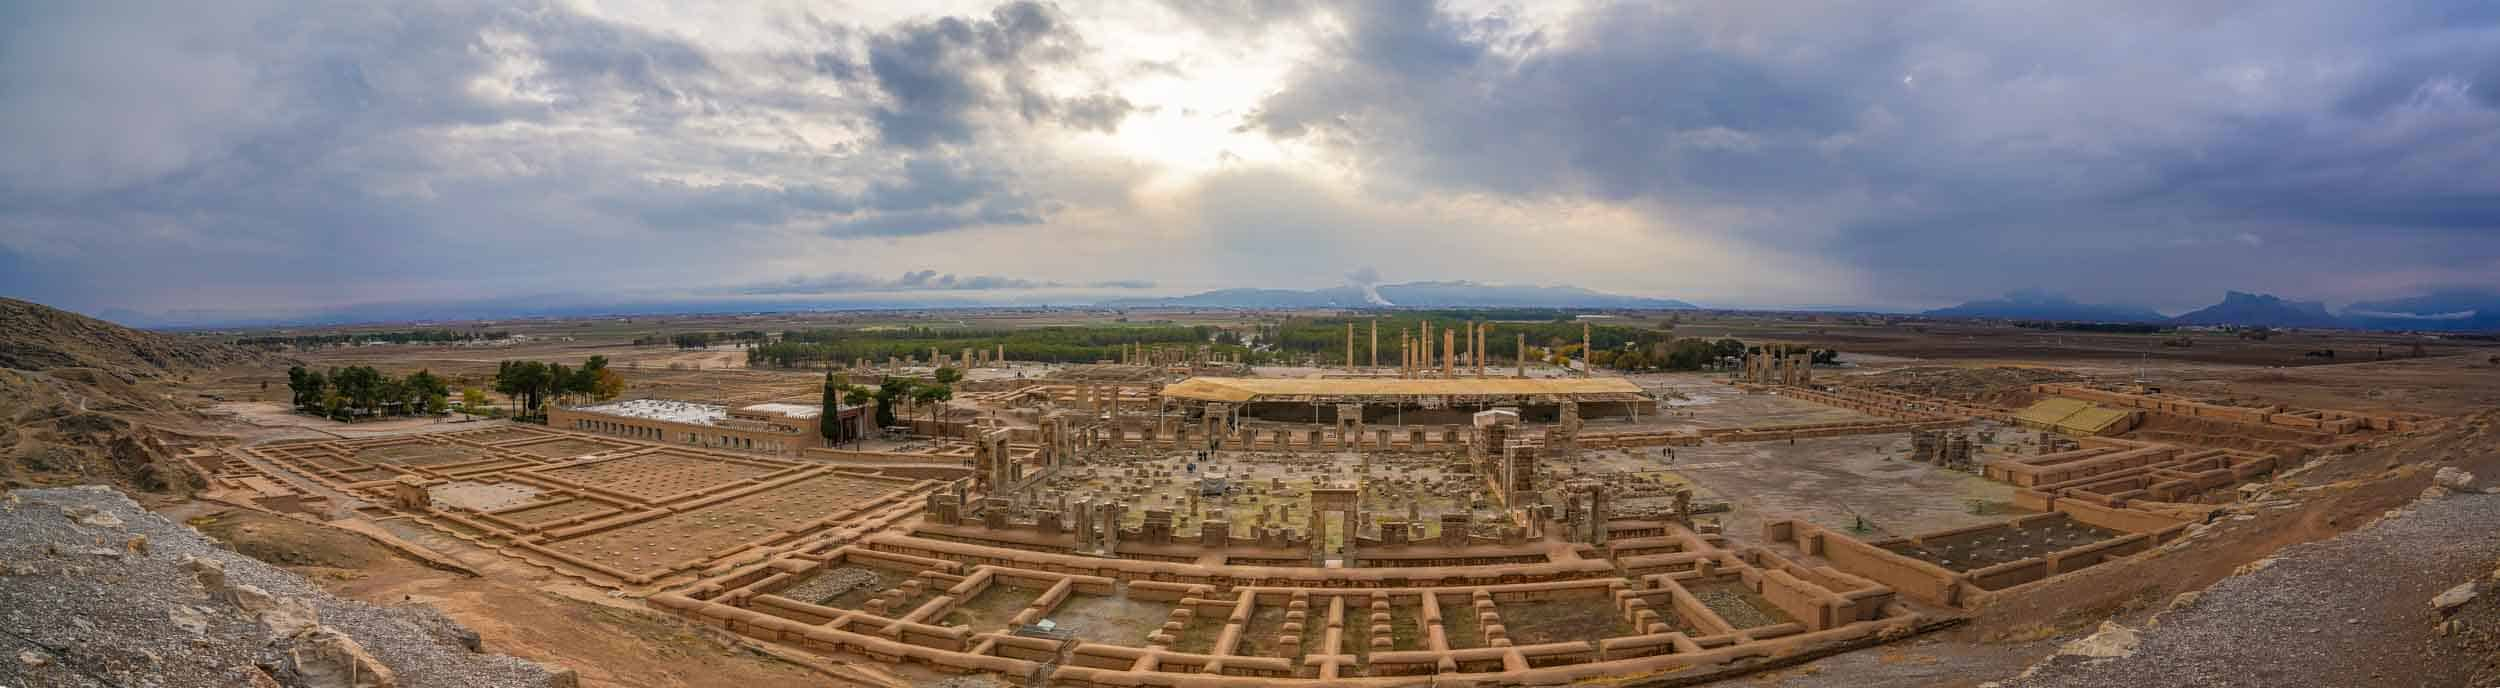 Panorama of Persepolis from the hill in the behind it, in iran